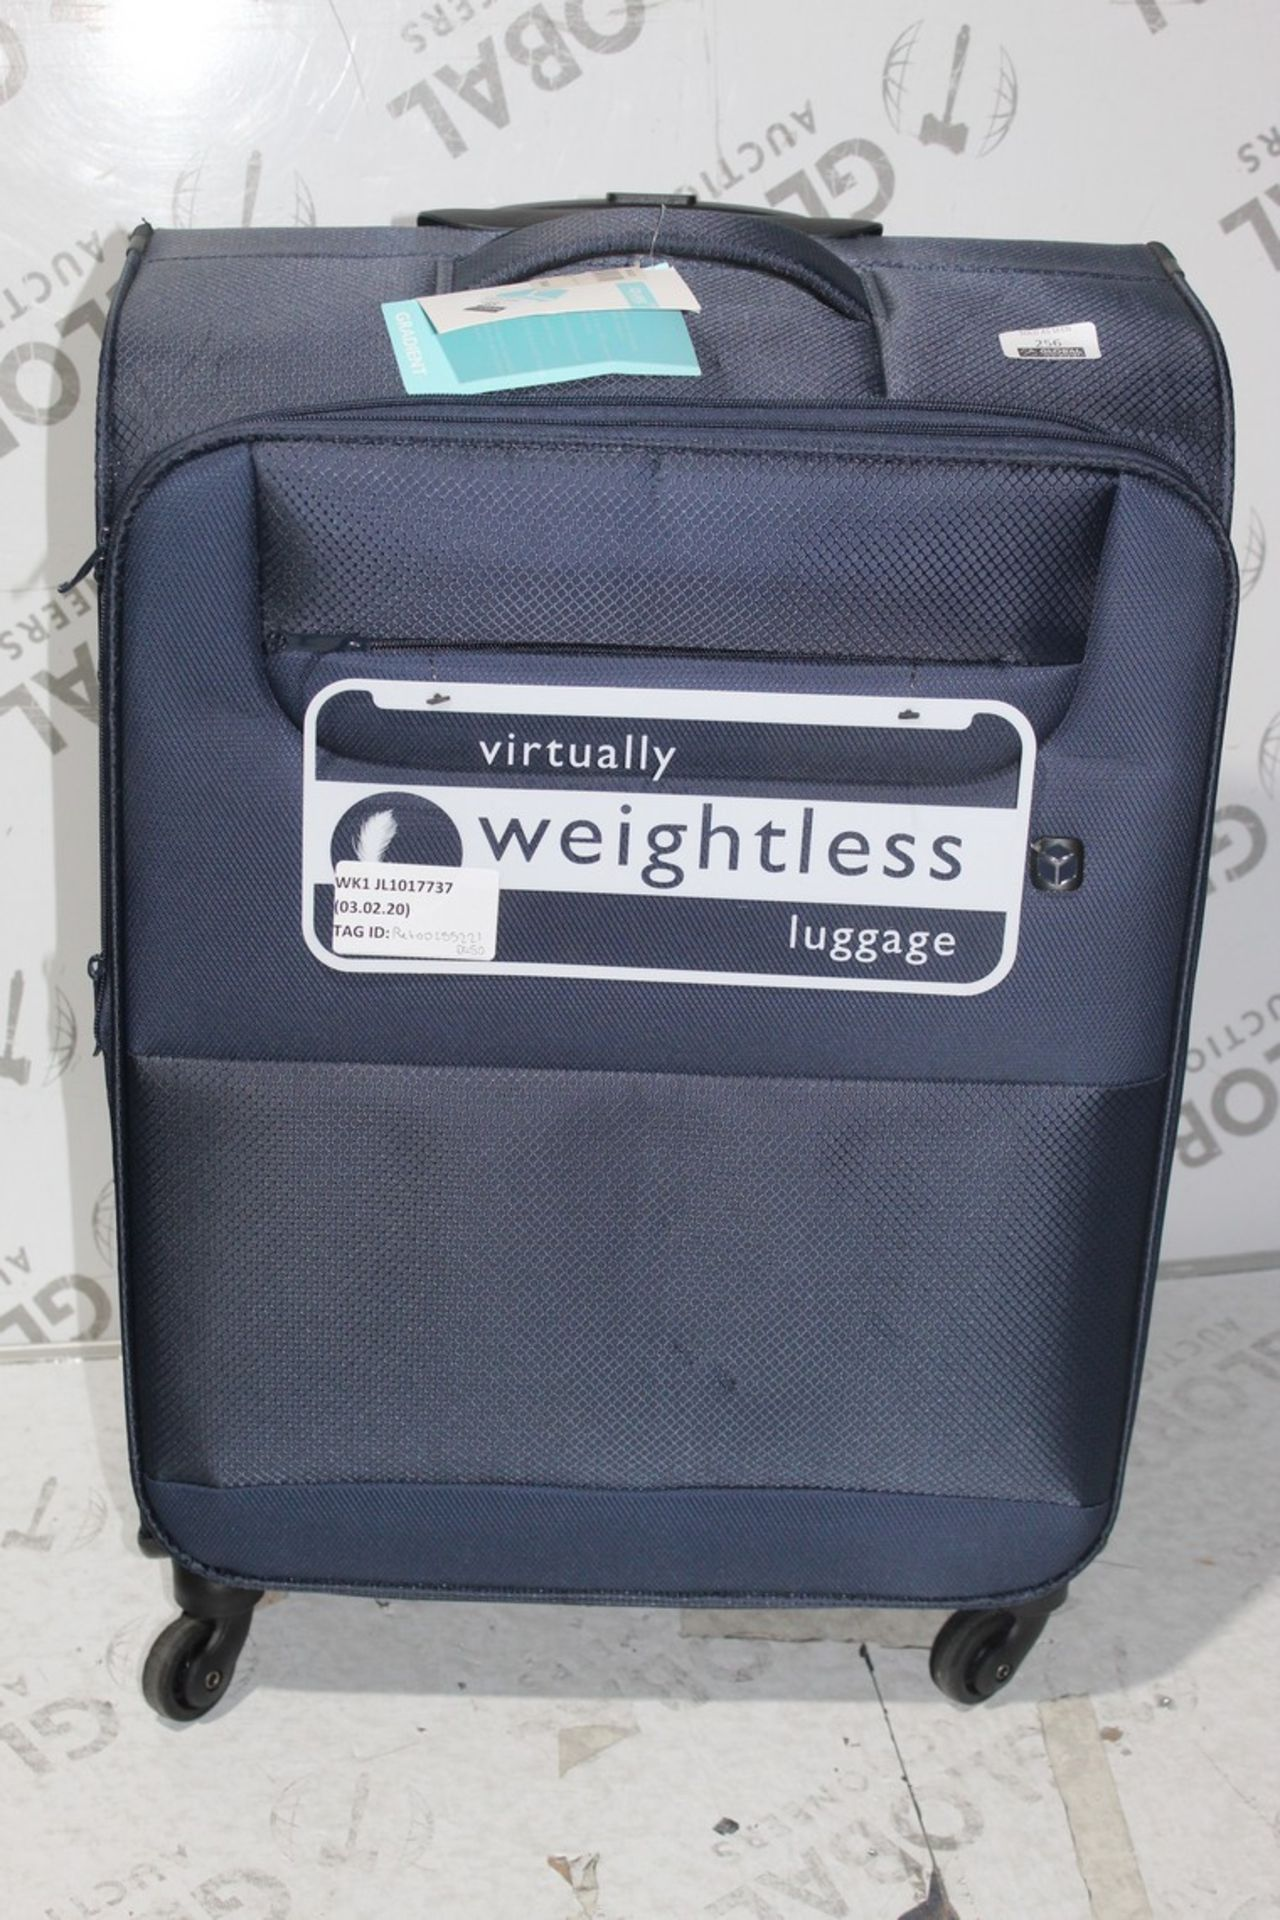 Lot 256 - Cubed Gradient Softshell 360 Wheeled Suitcase, RRP£45.00 (RET00255221) (Public Viewing and